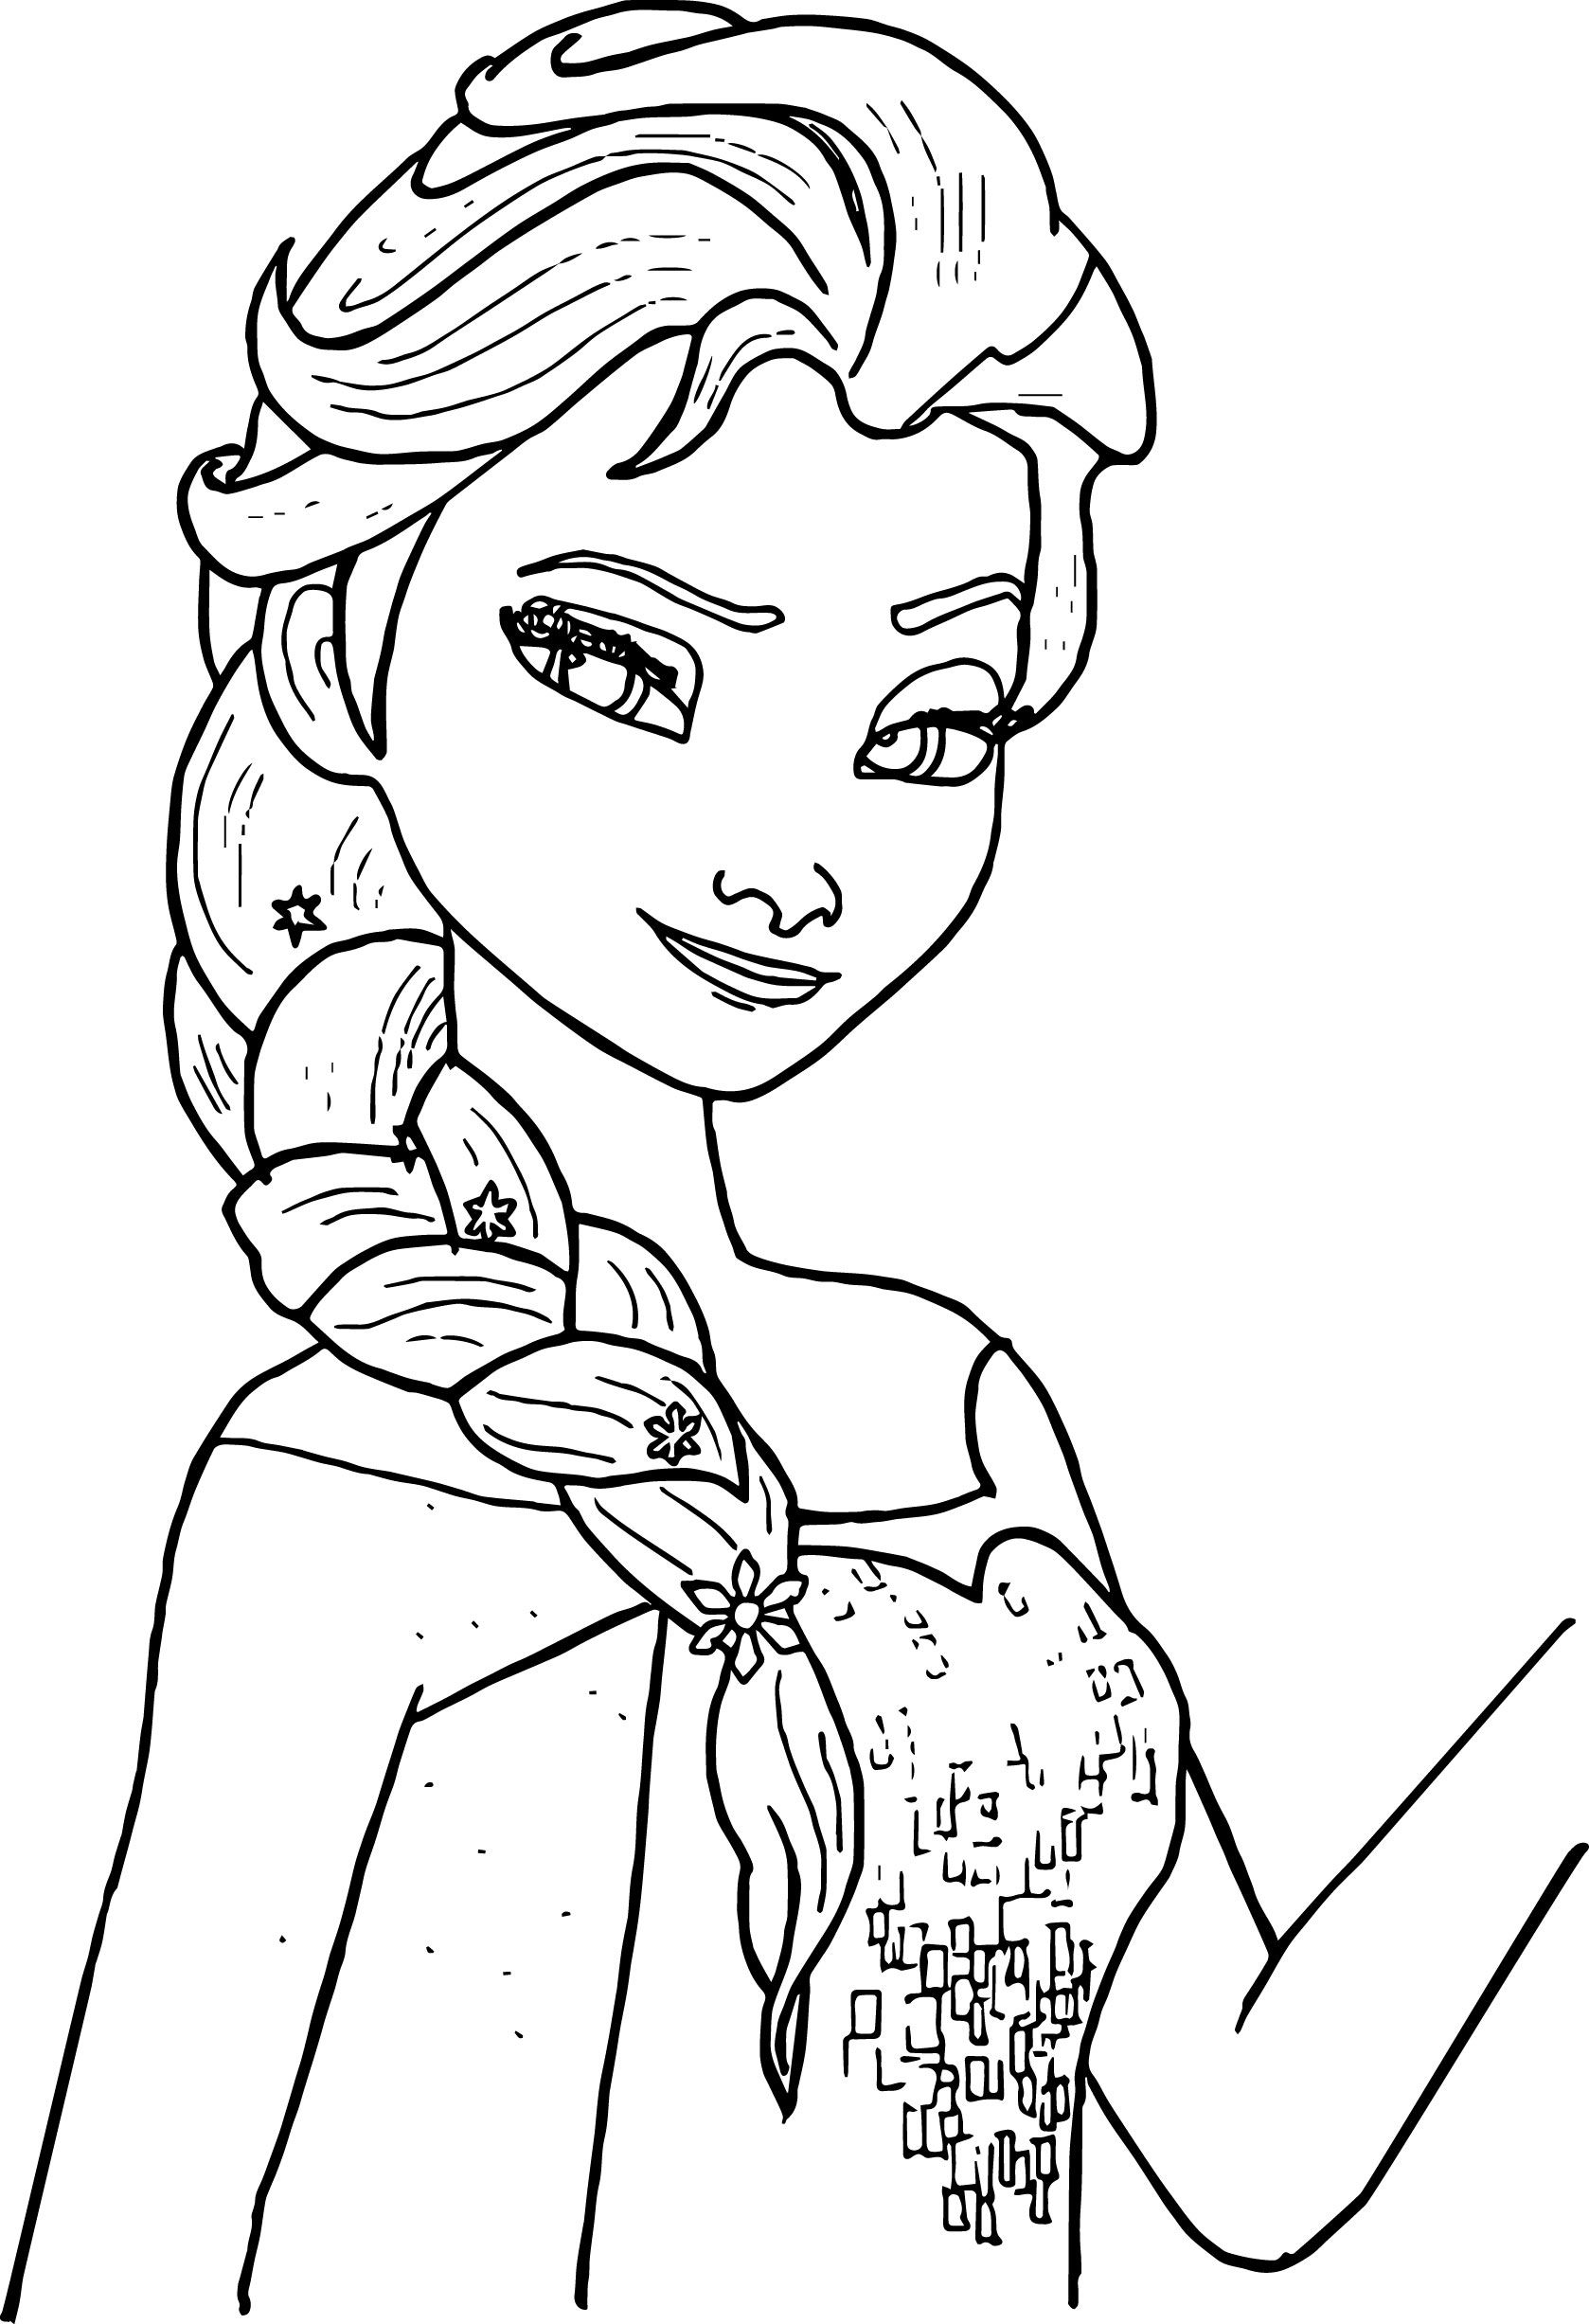 elsa cartoon coloring pages elsa coloring pages to download and print for free elsa coloring cartoon pages